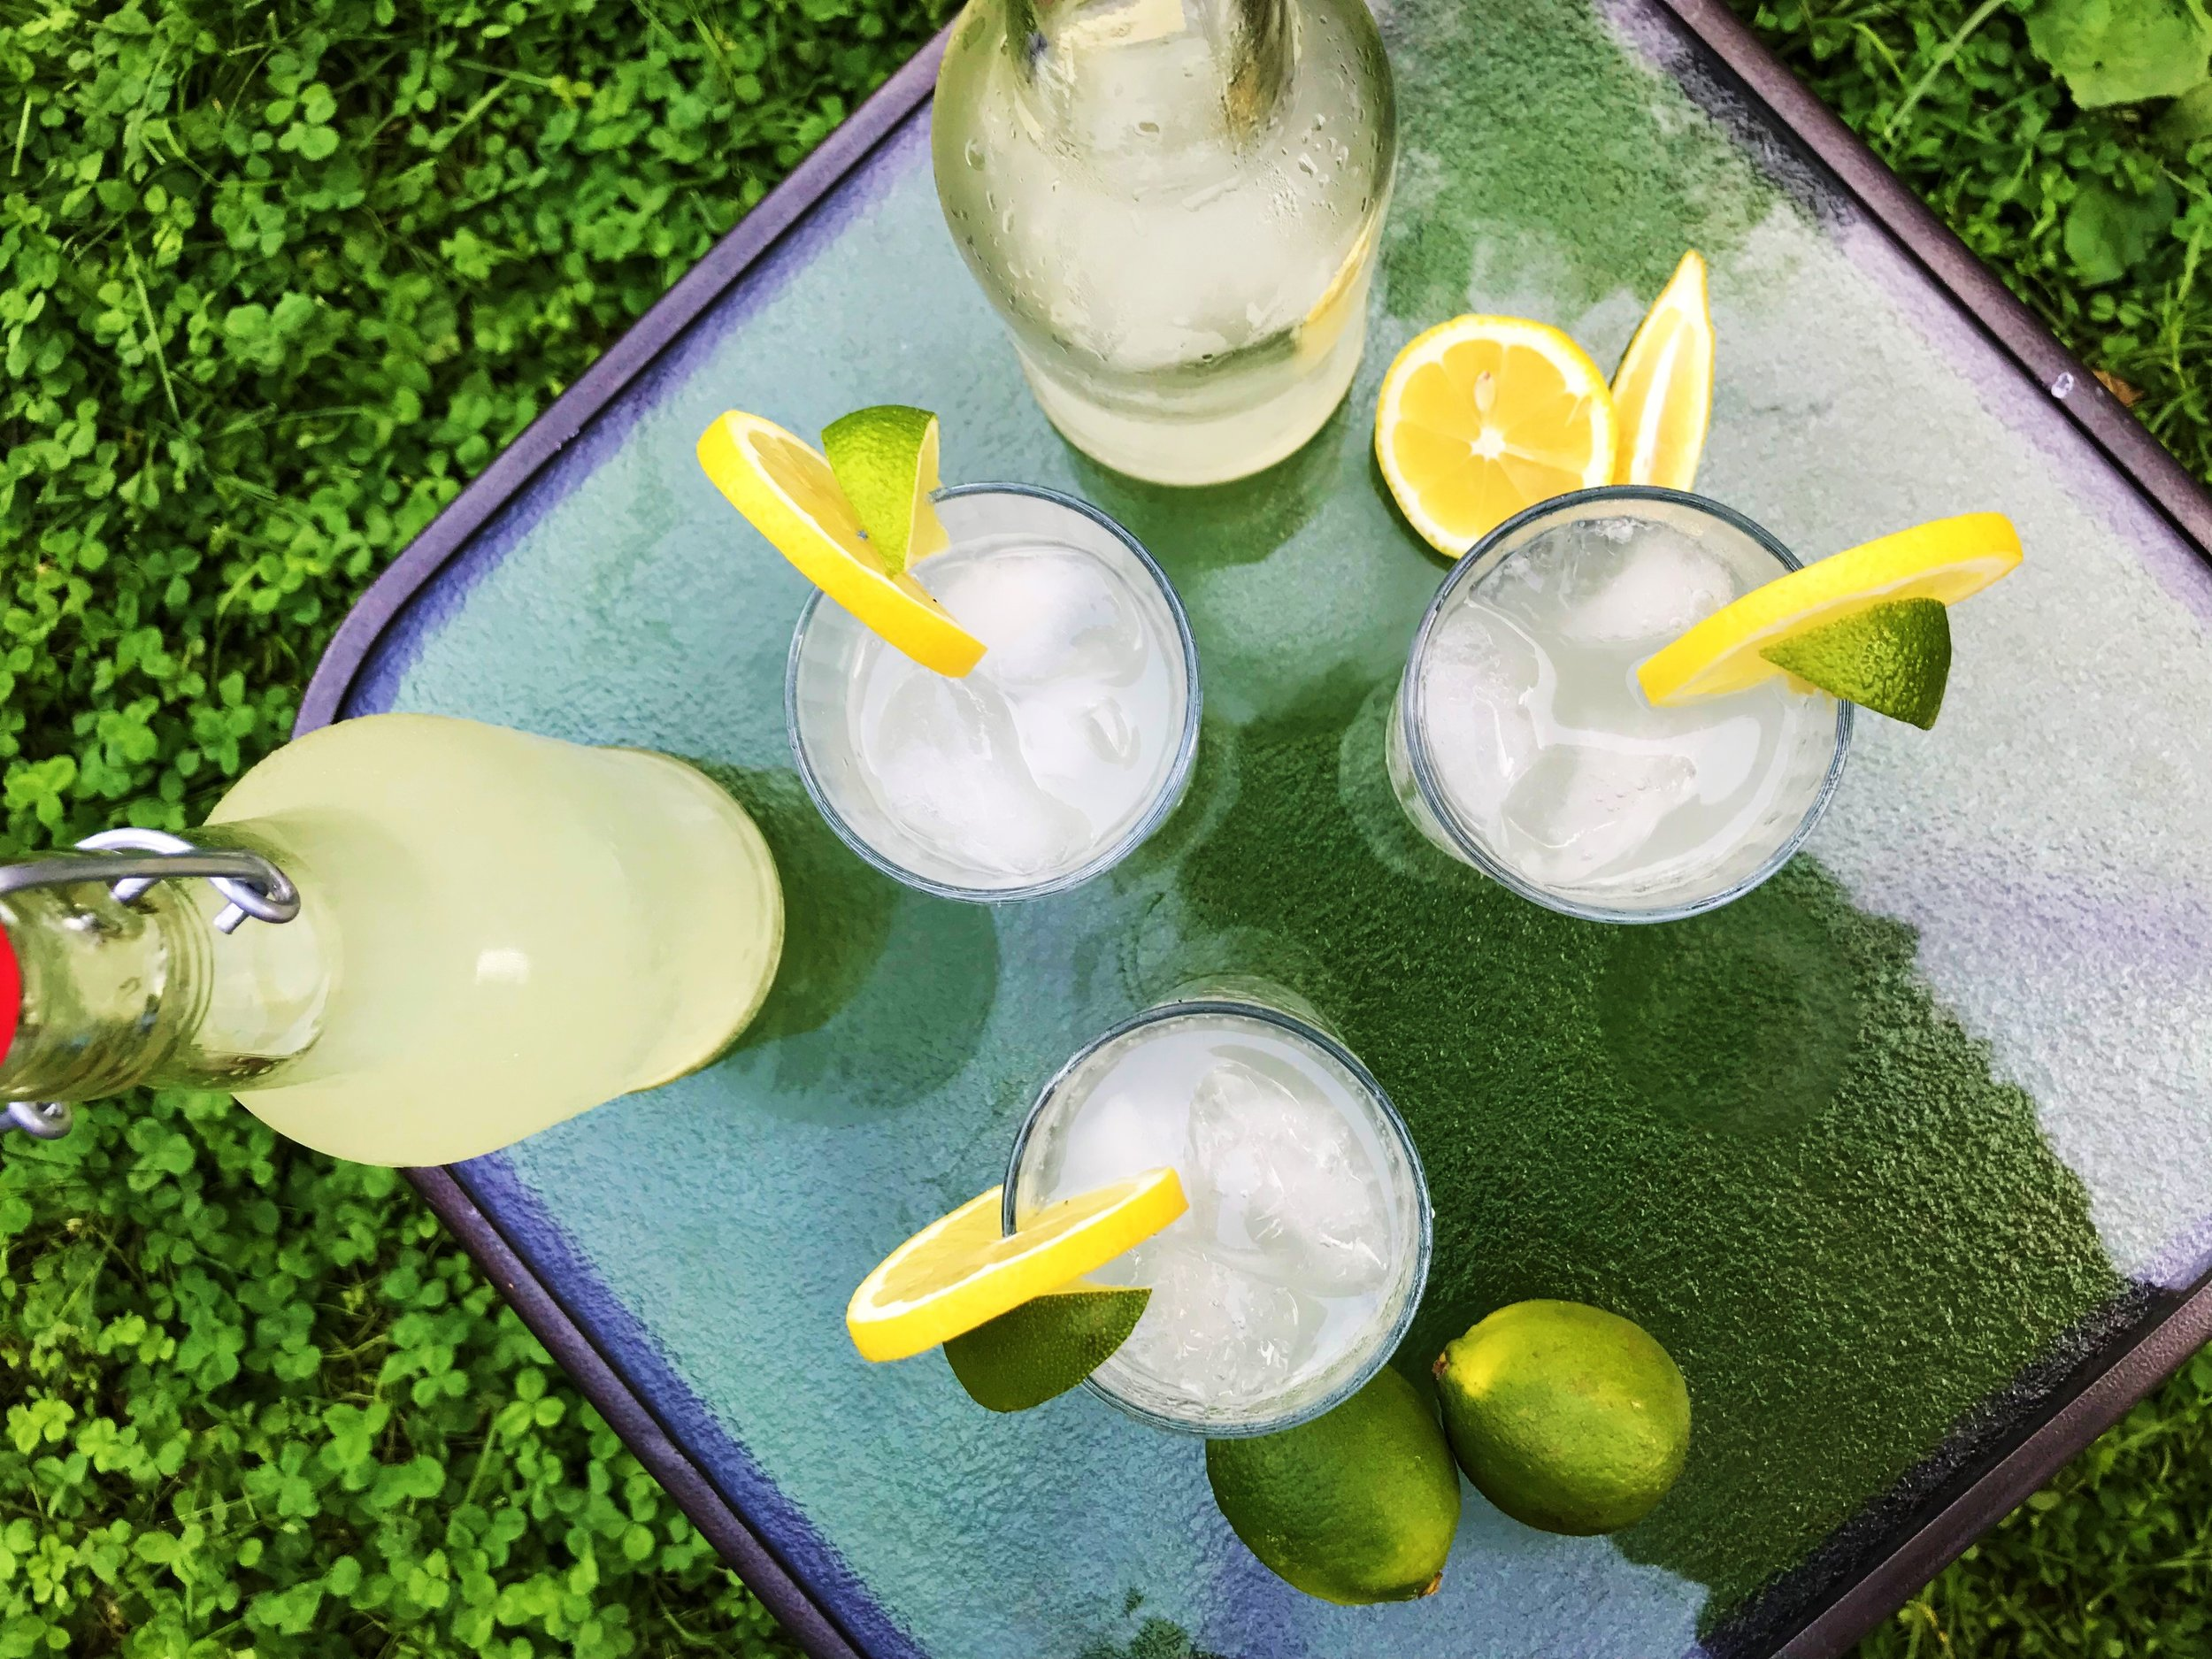 Naturally Carbonated Lemon-Lime Soda made in the Adventure Kitchen.